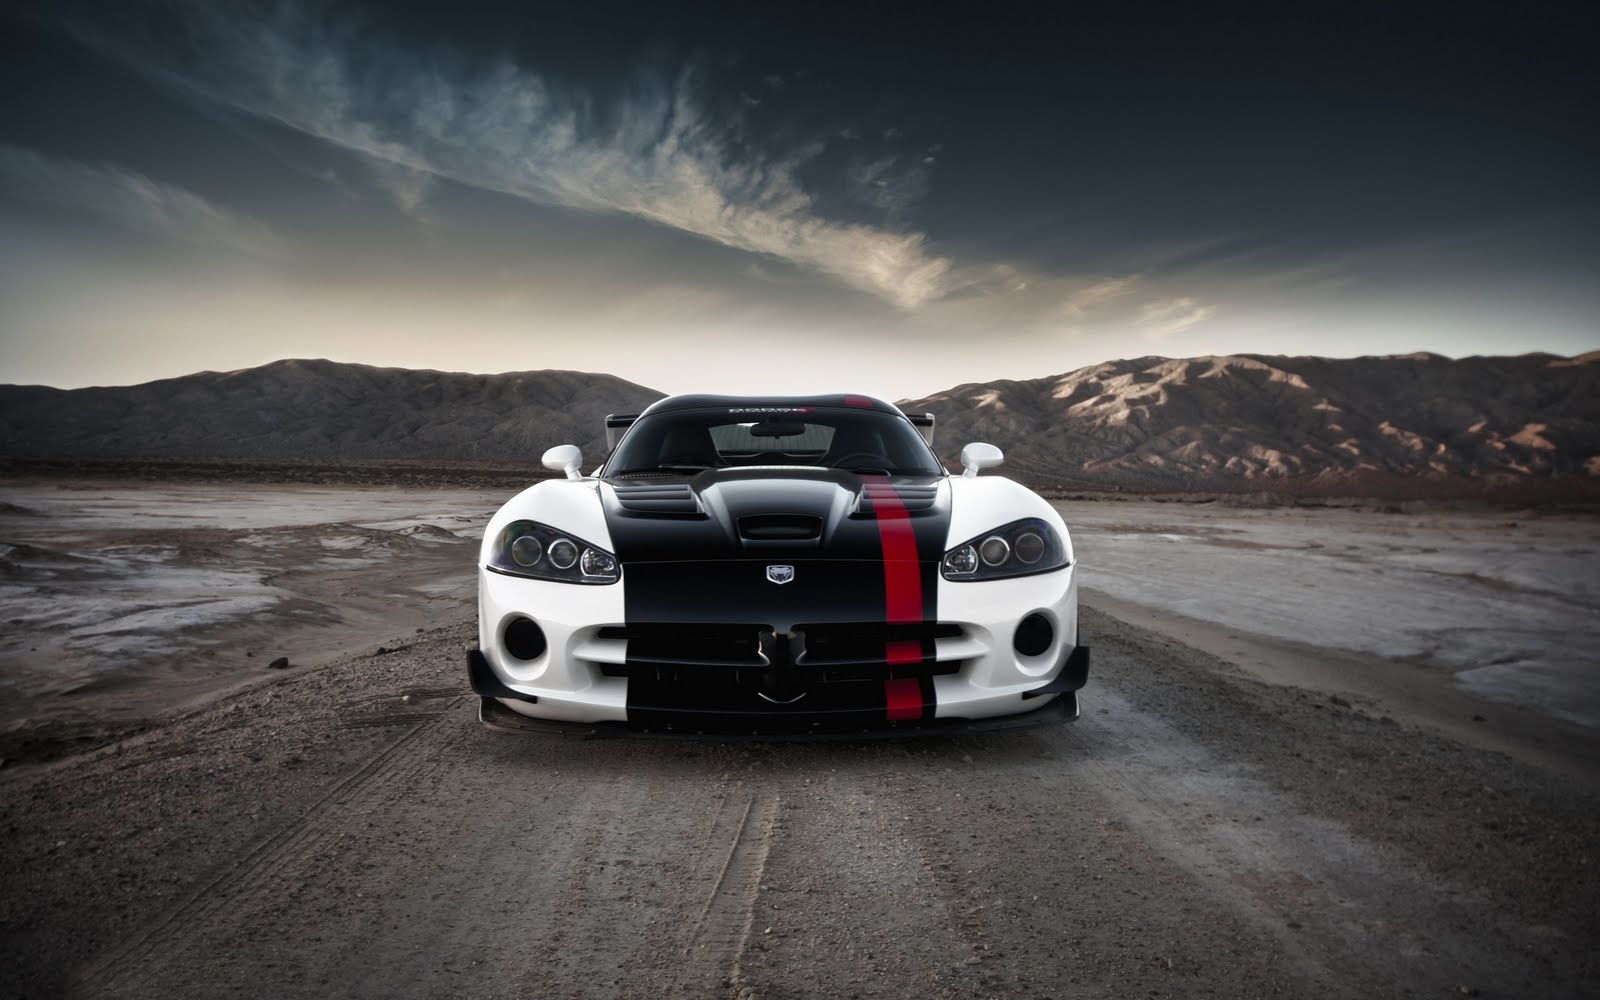 dodge-hd-pictures-wallpaper-wpc9204318